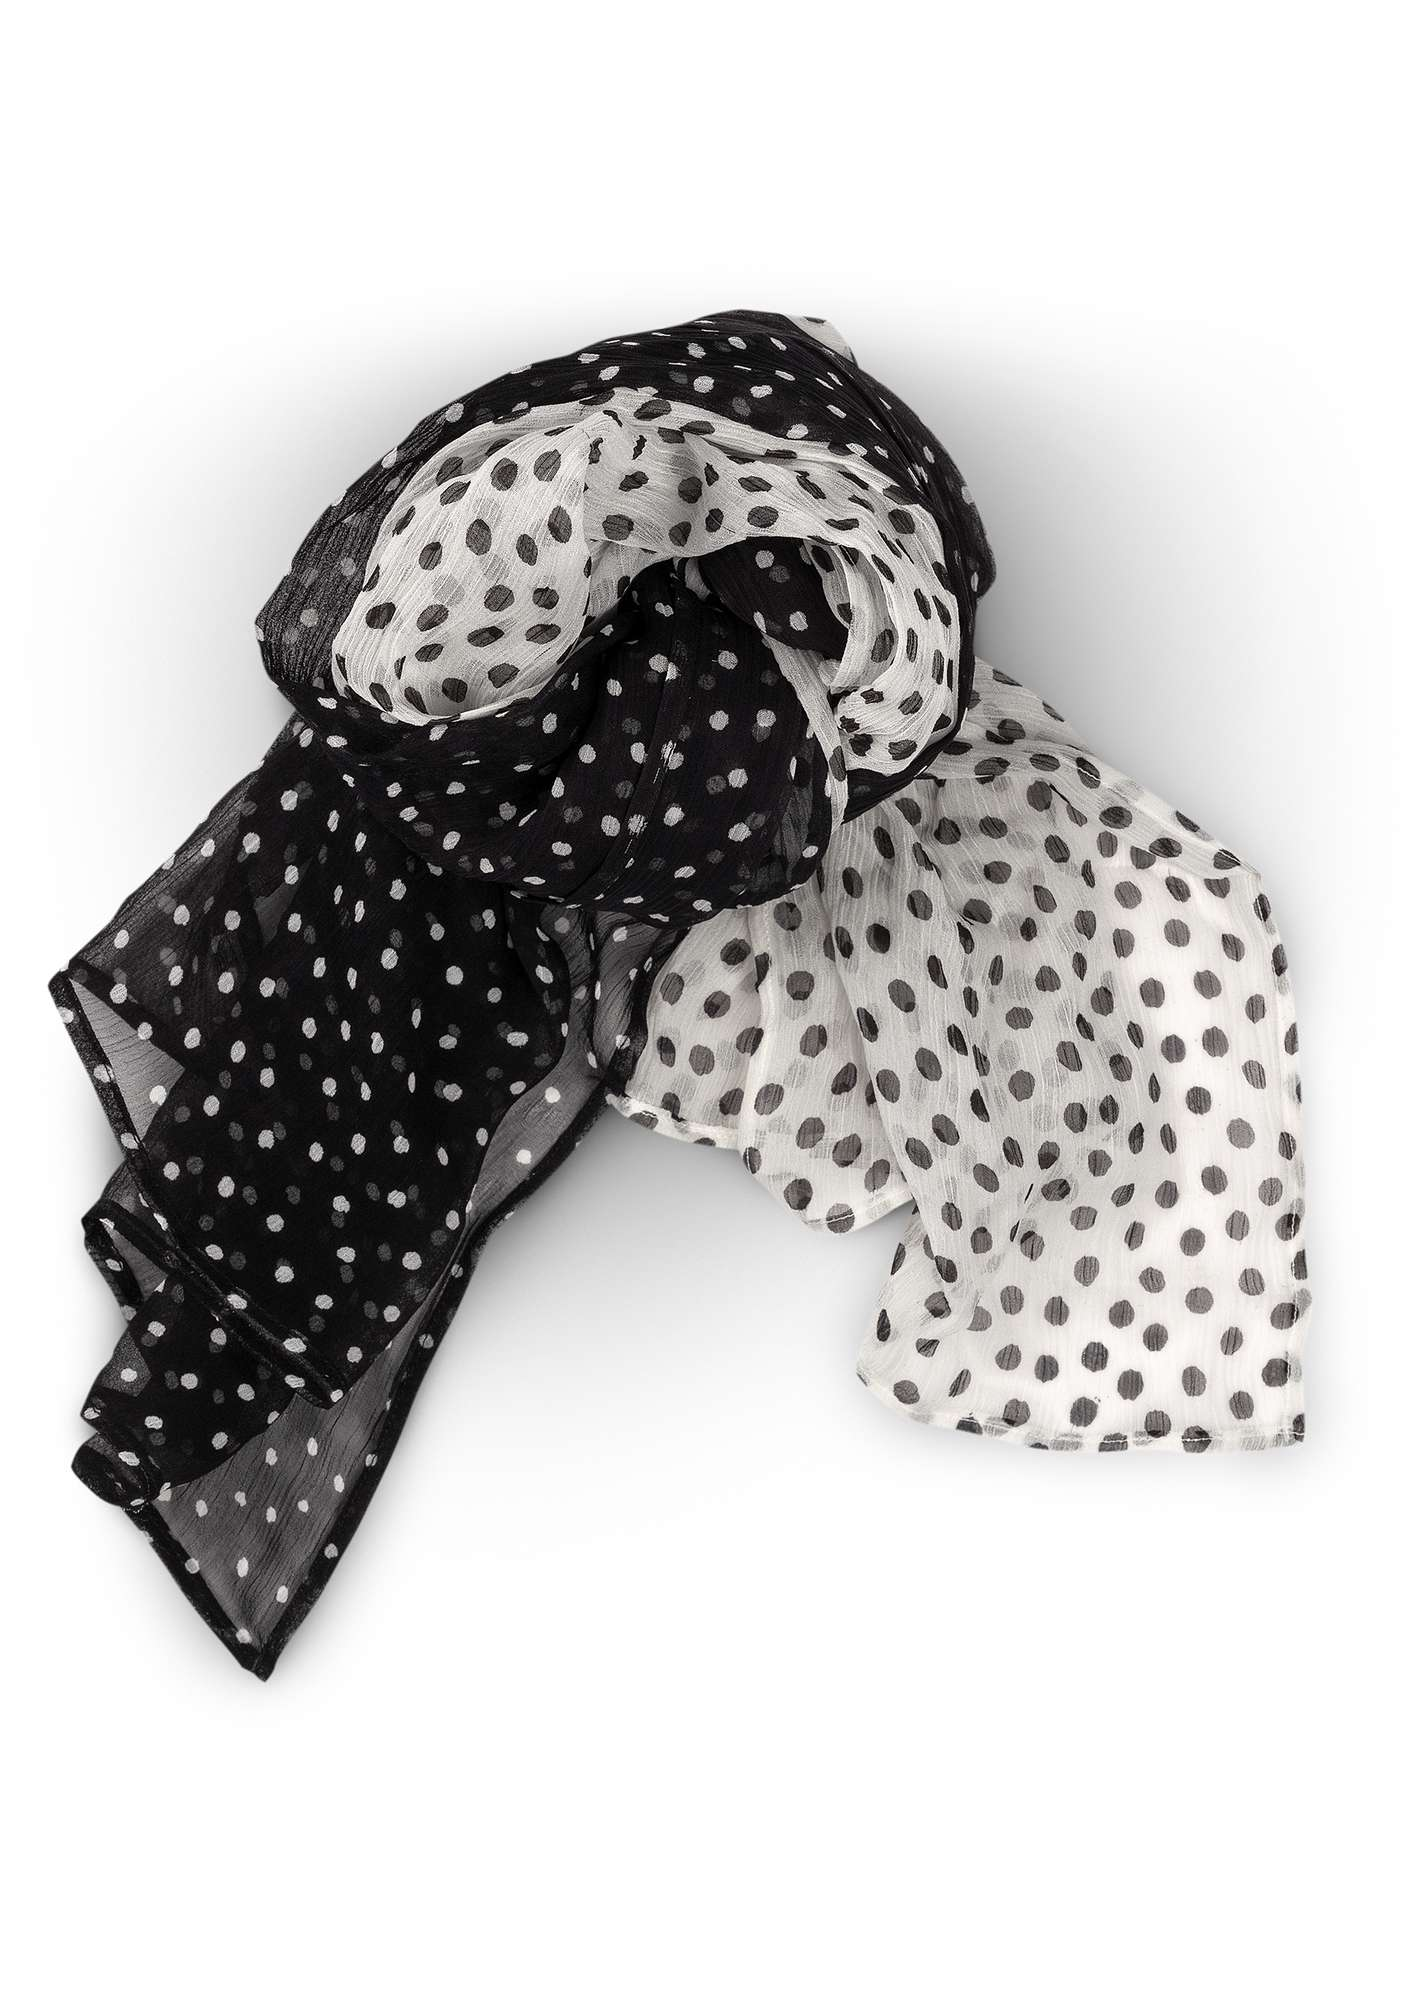 Silk chiffon dotted shawl black/unbleached